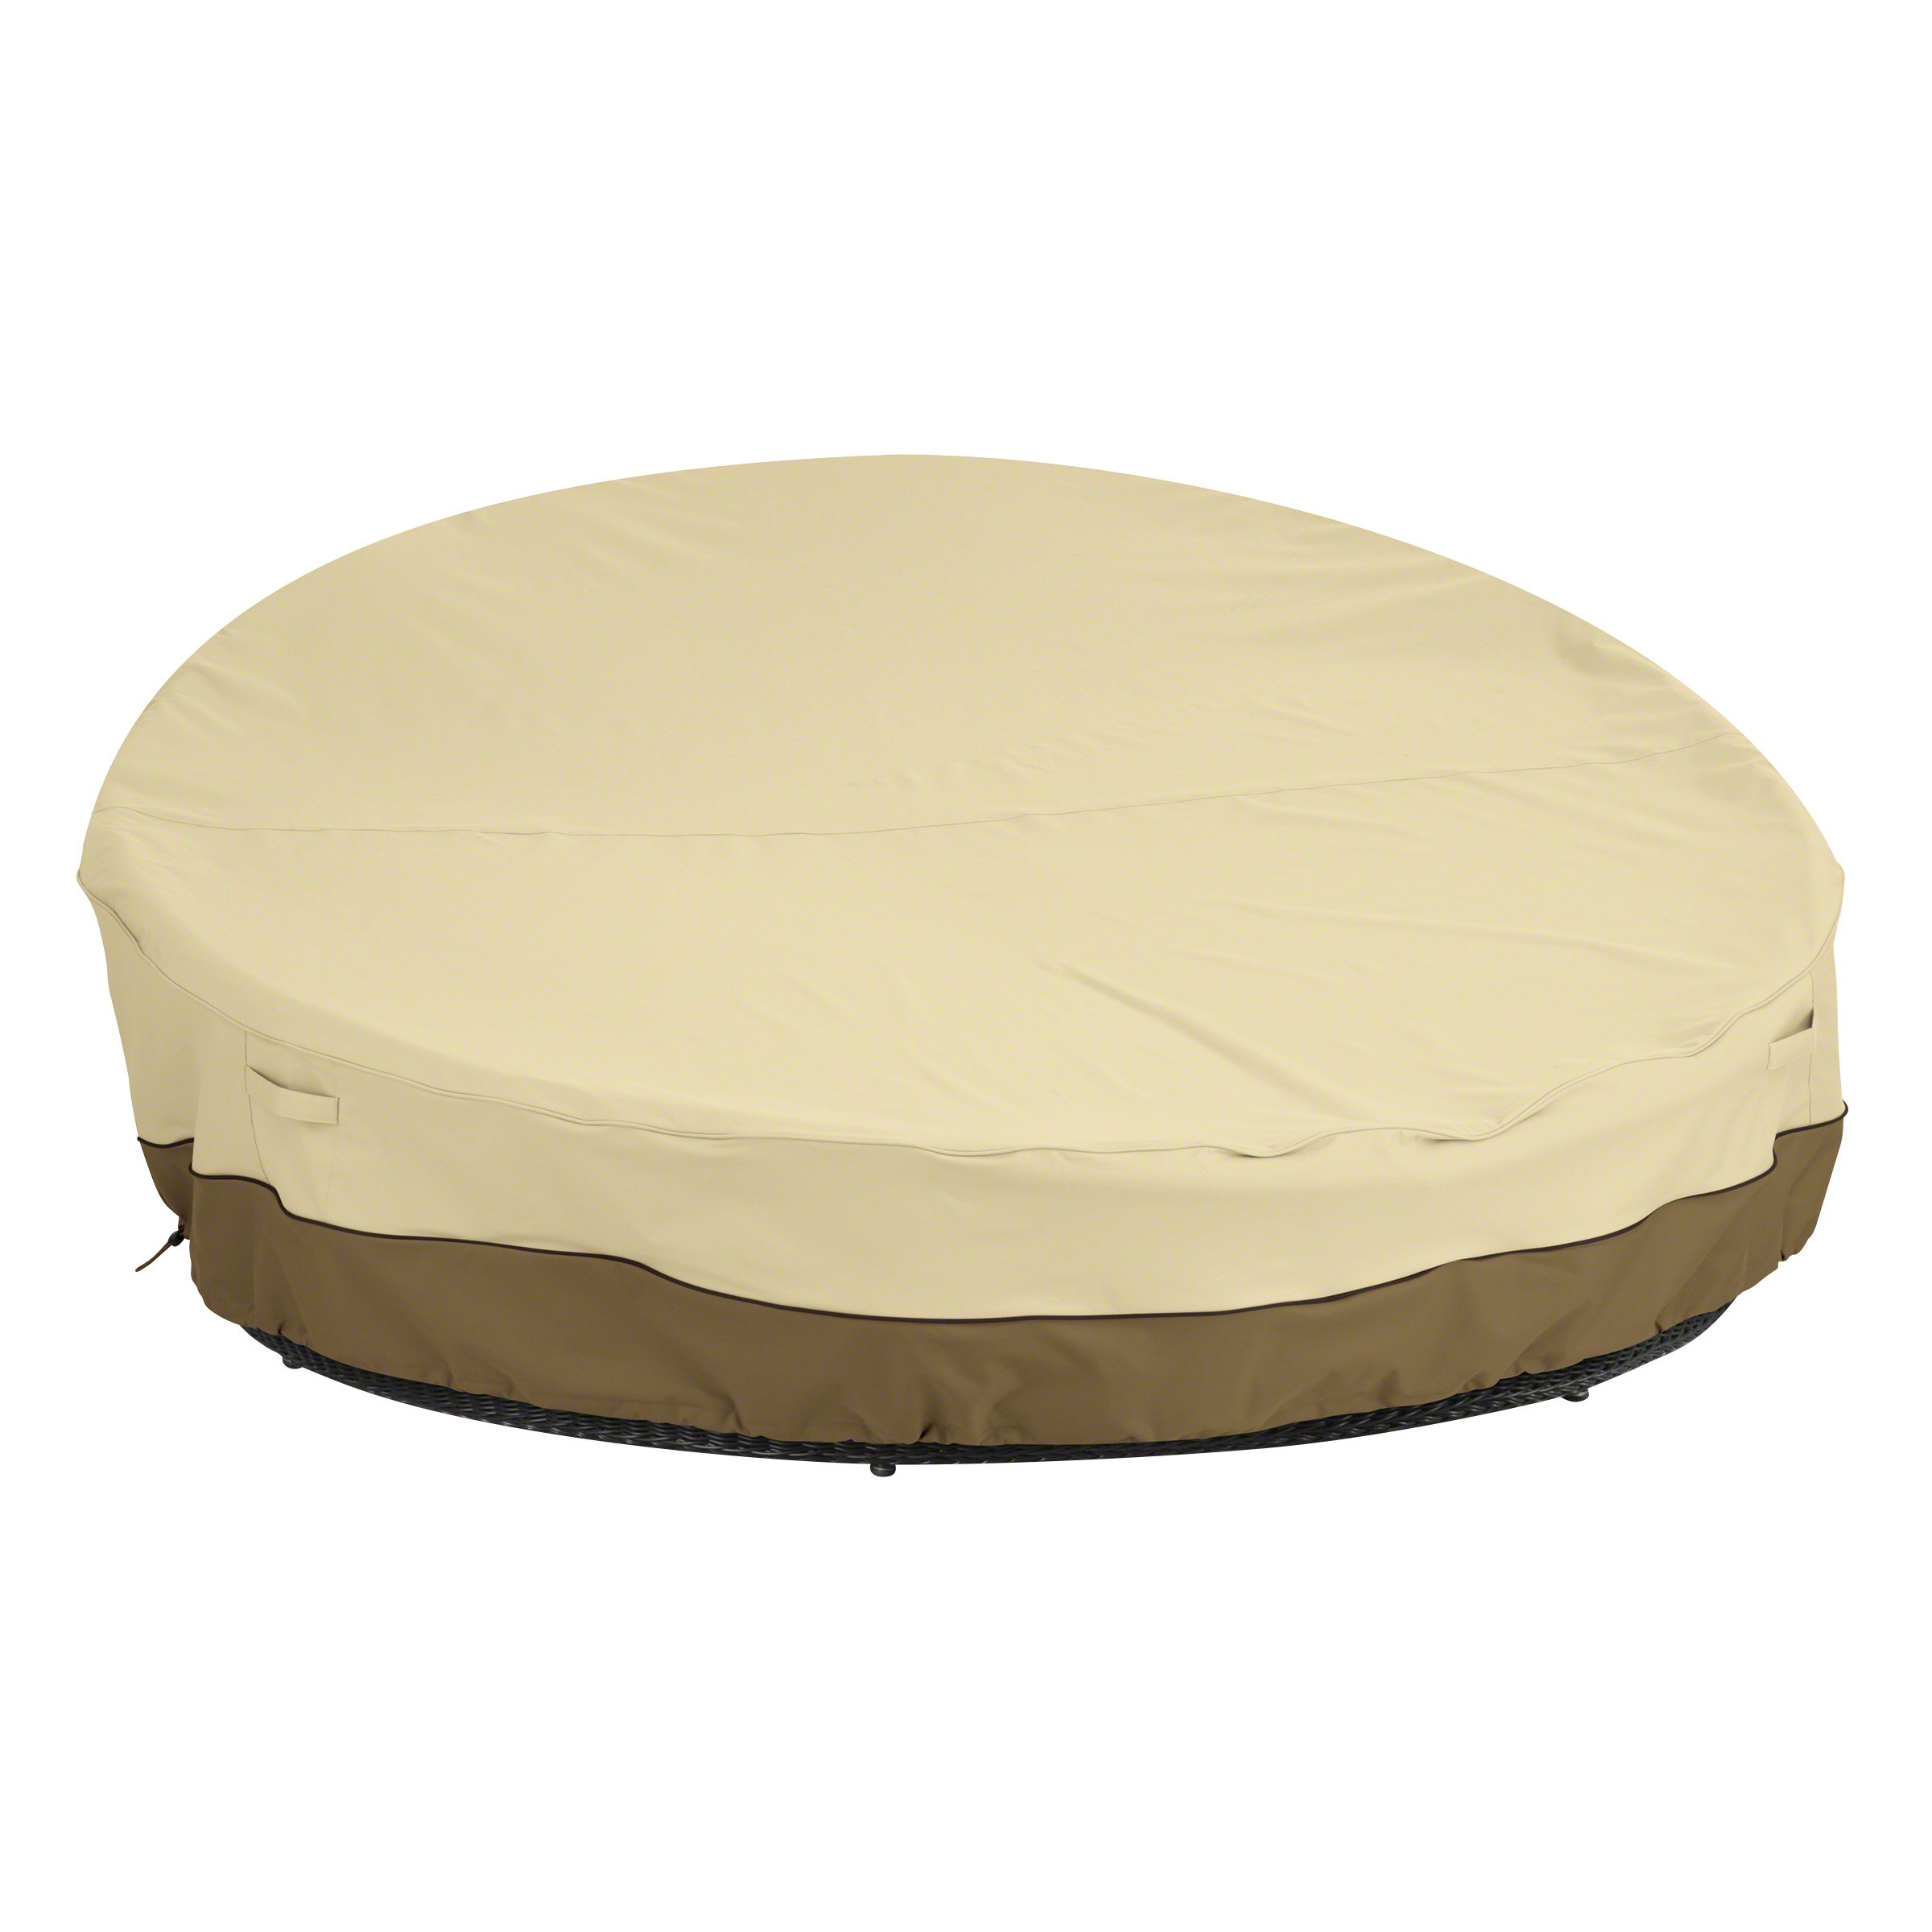 Classic Accessories Veranda Round Day Bed Cover, Medium/Large by Classic Accessories